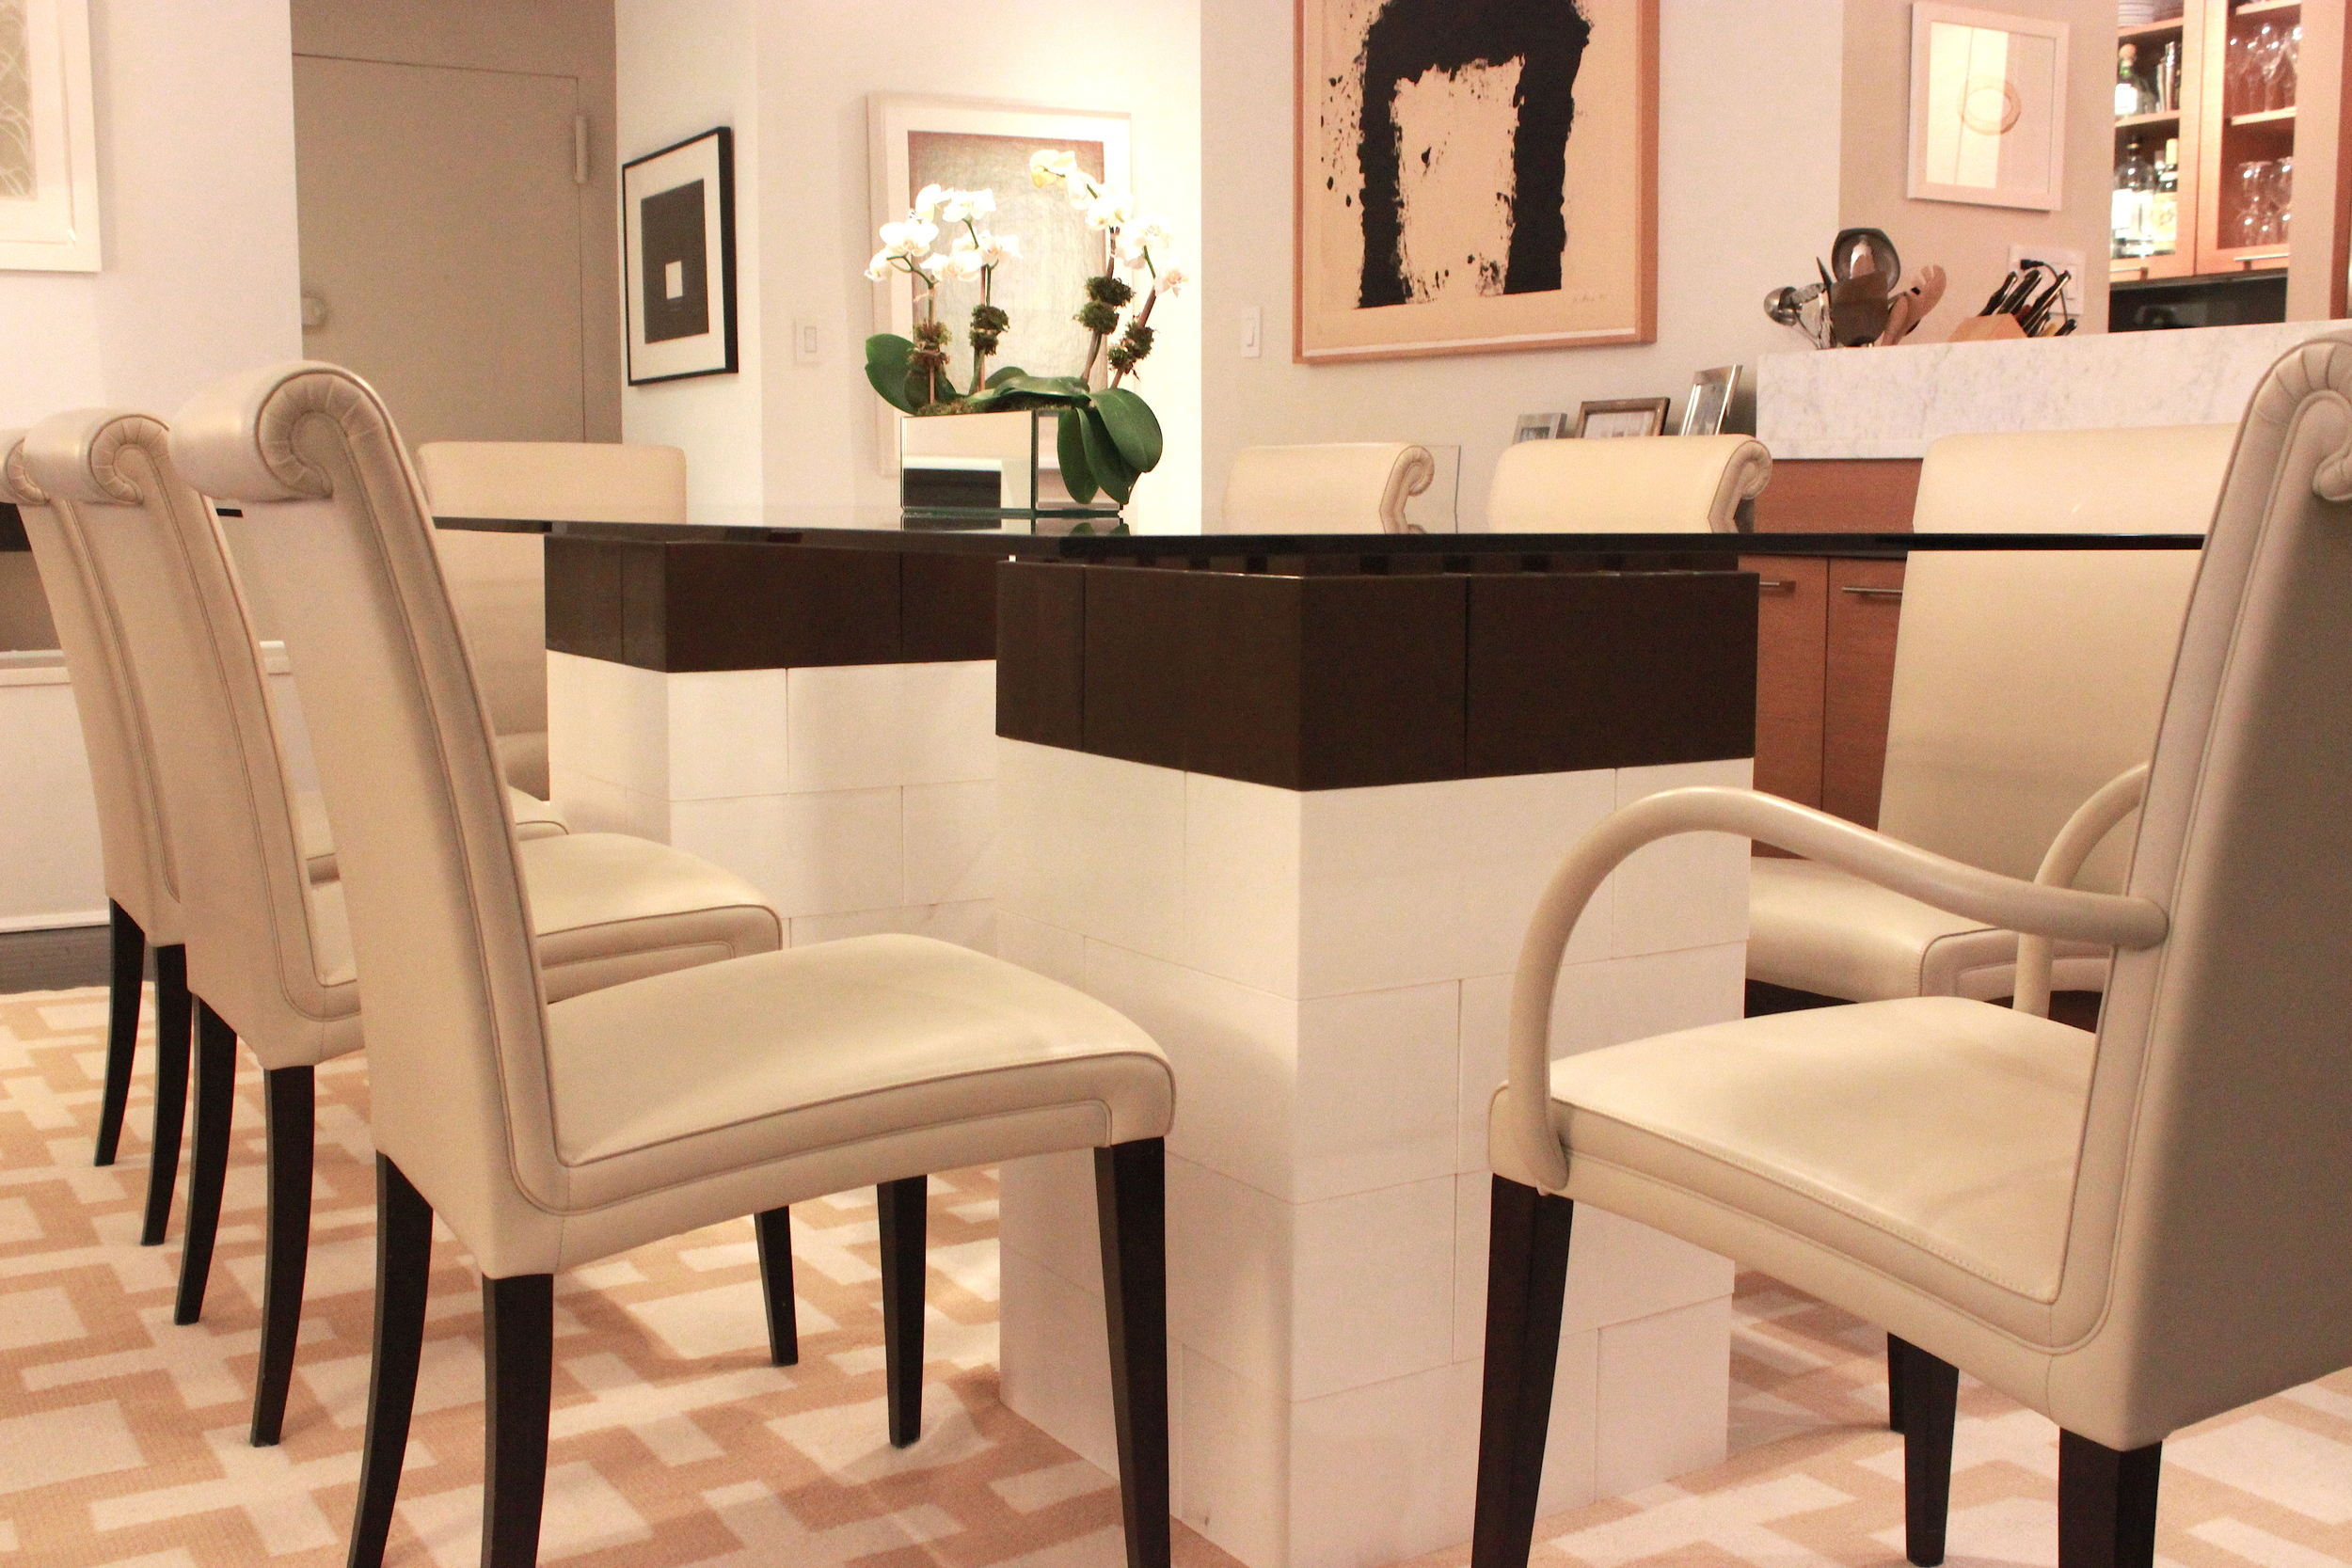 Create beautiful modular table stands for dining room tables, coffee tables, and other furniture ($278.00  not including glass ). See instructions  here